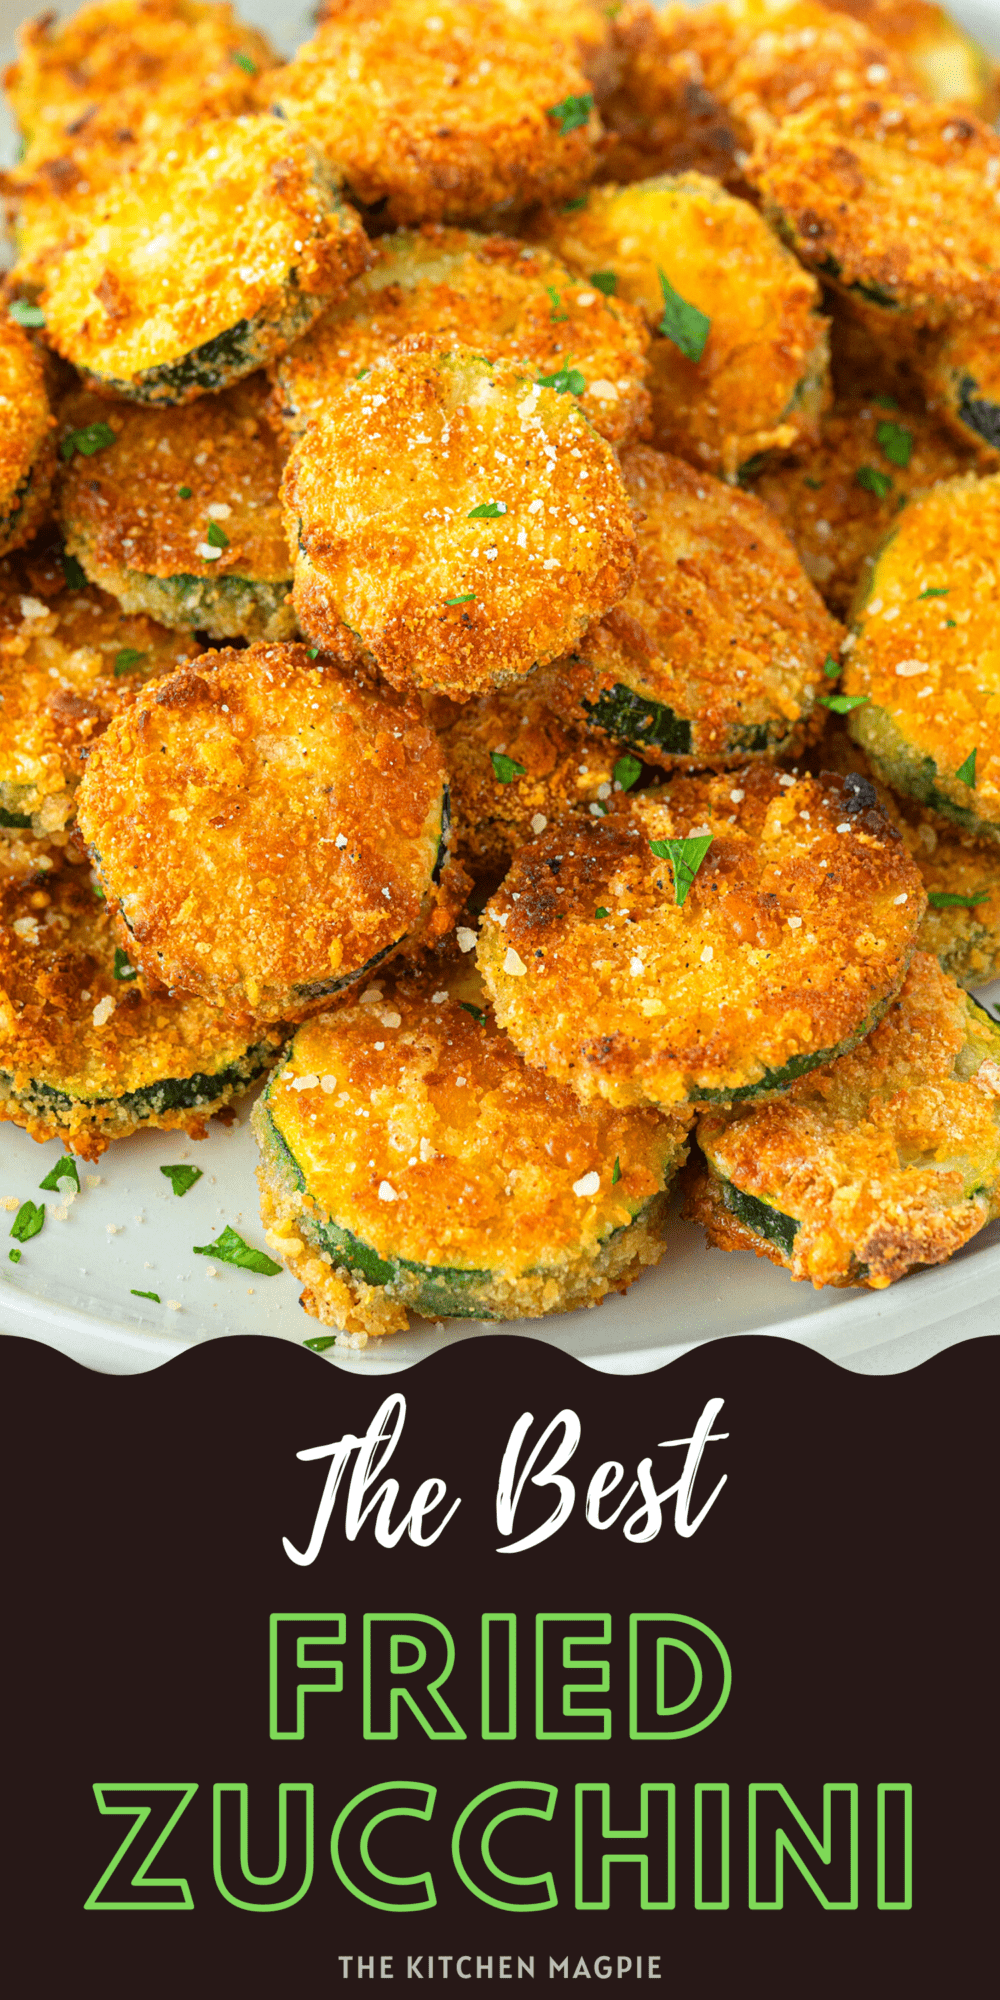 Zucchini slices are covered in a buttery, seasoned coating then fried to crispy perfection! Serve with your favorite dip or salad dressing!